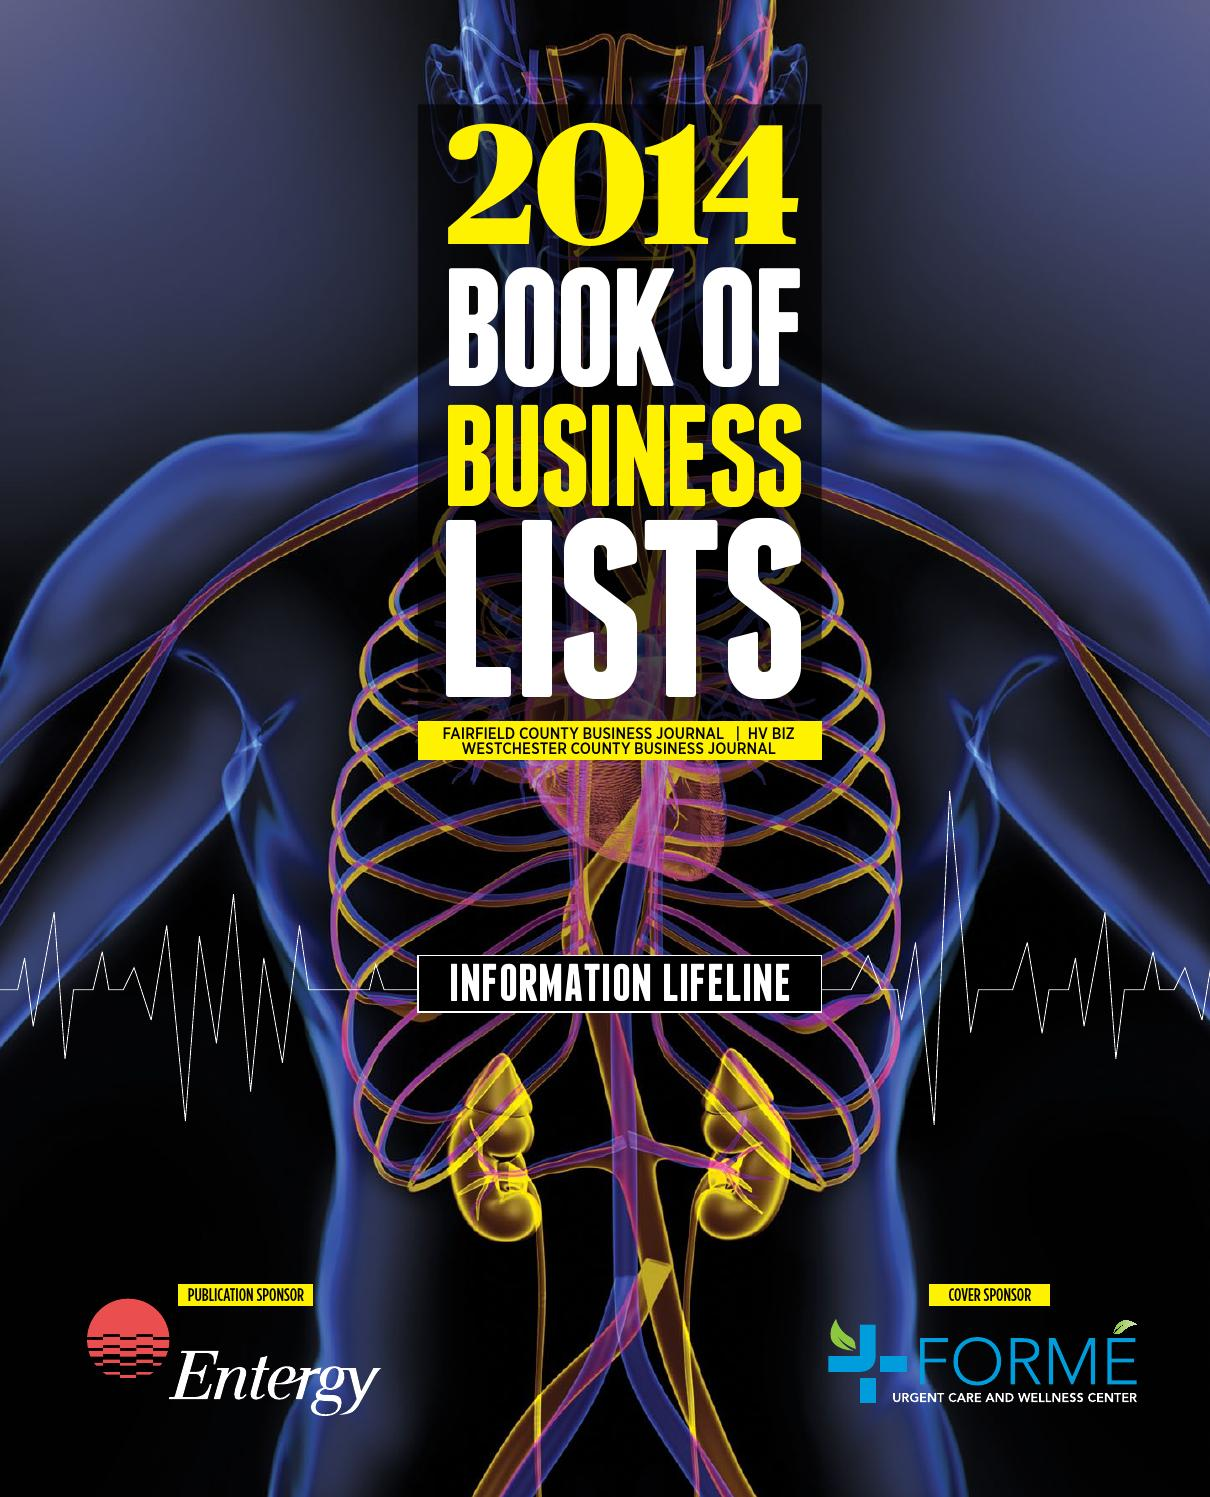 Business Plan Salle D Escalade book of business lists 2014wag magazine - issuu